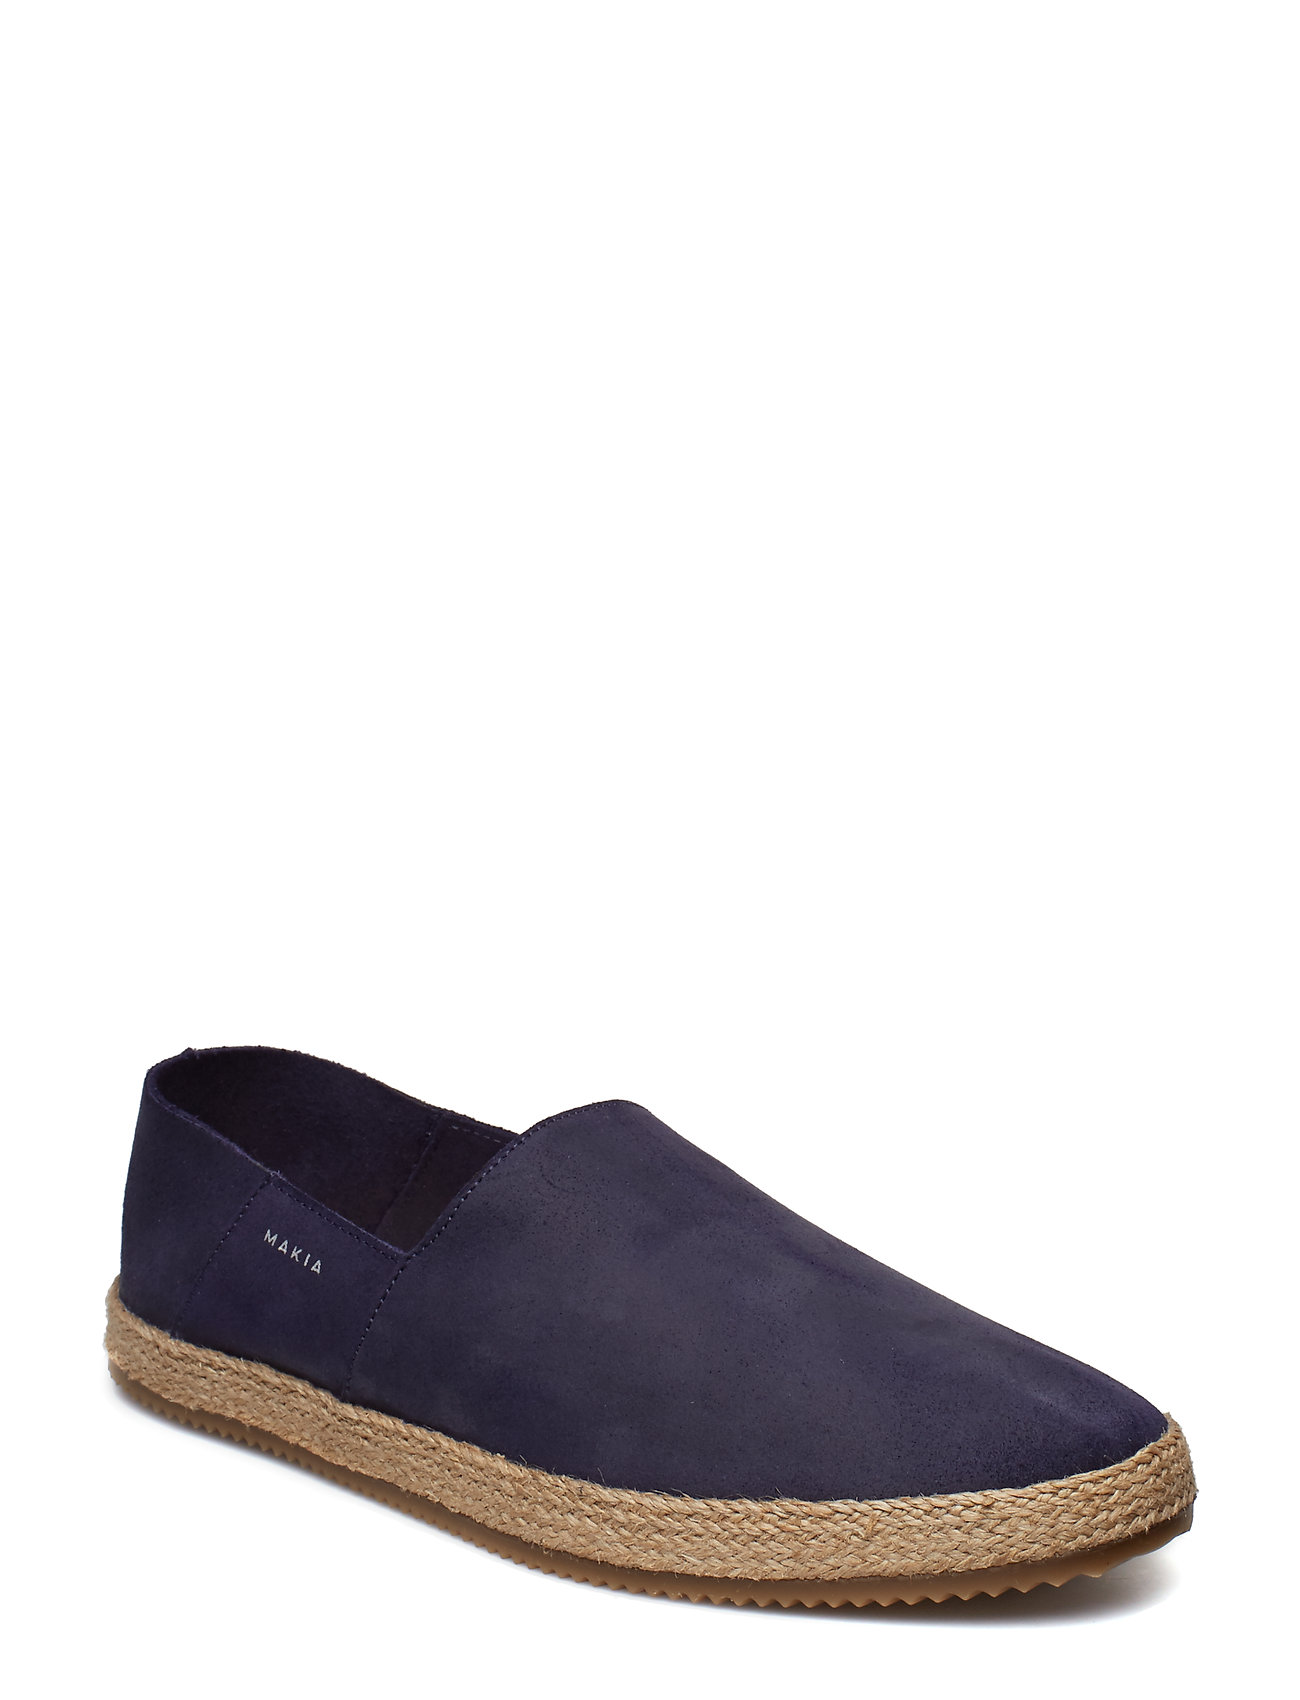 Makia PATIO SLIP-ON - NAVY